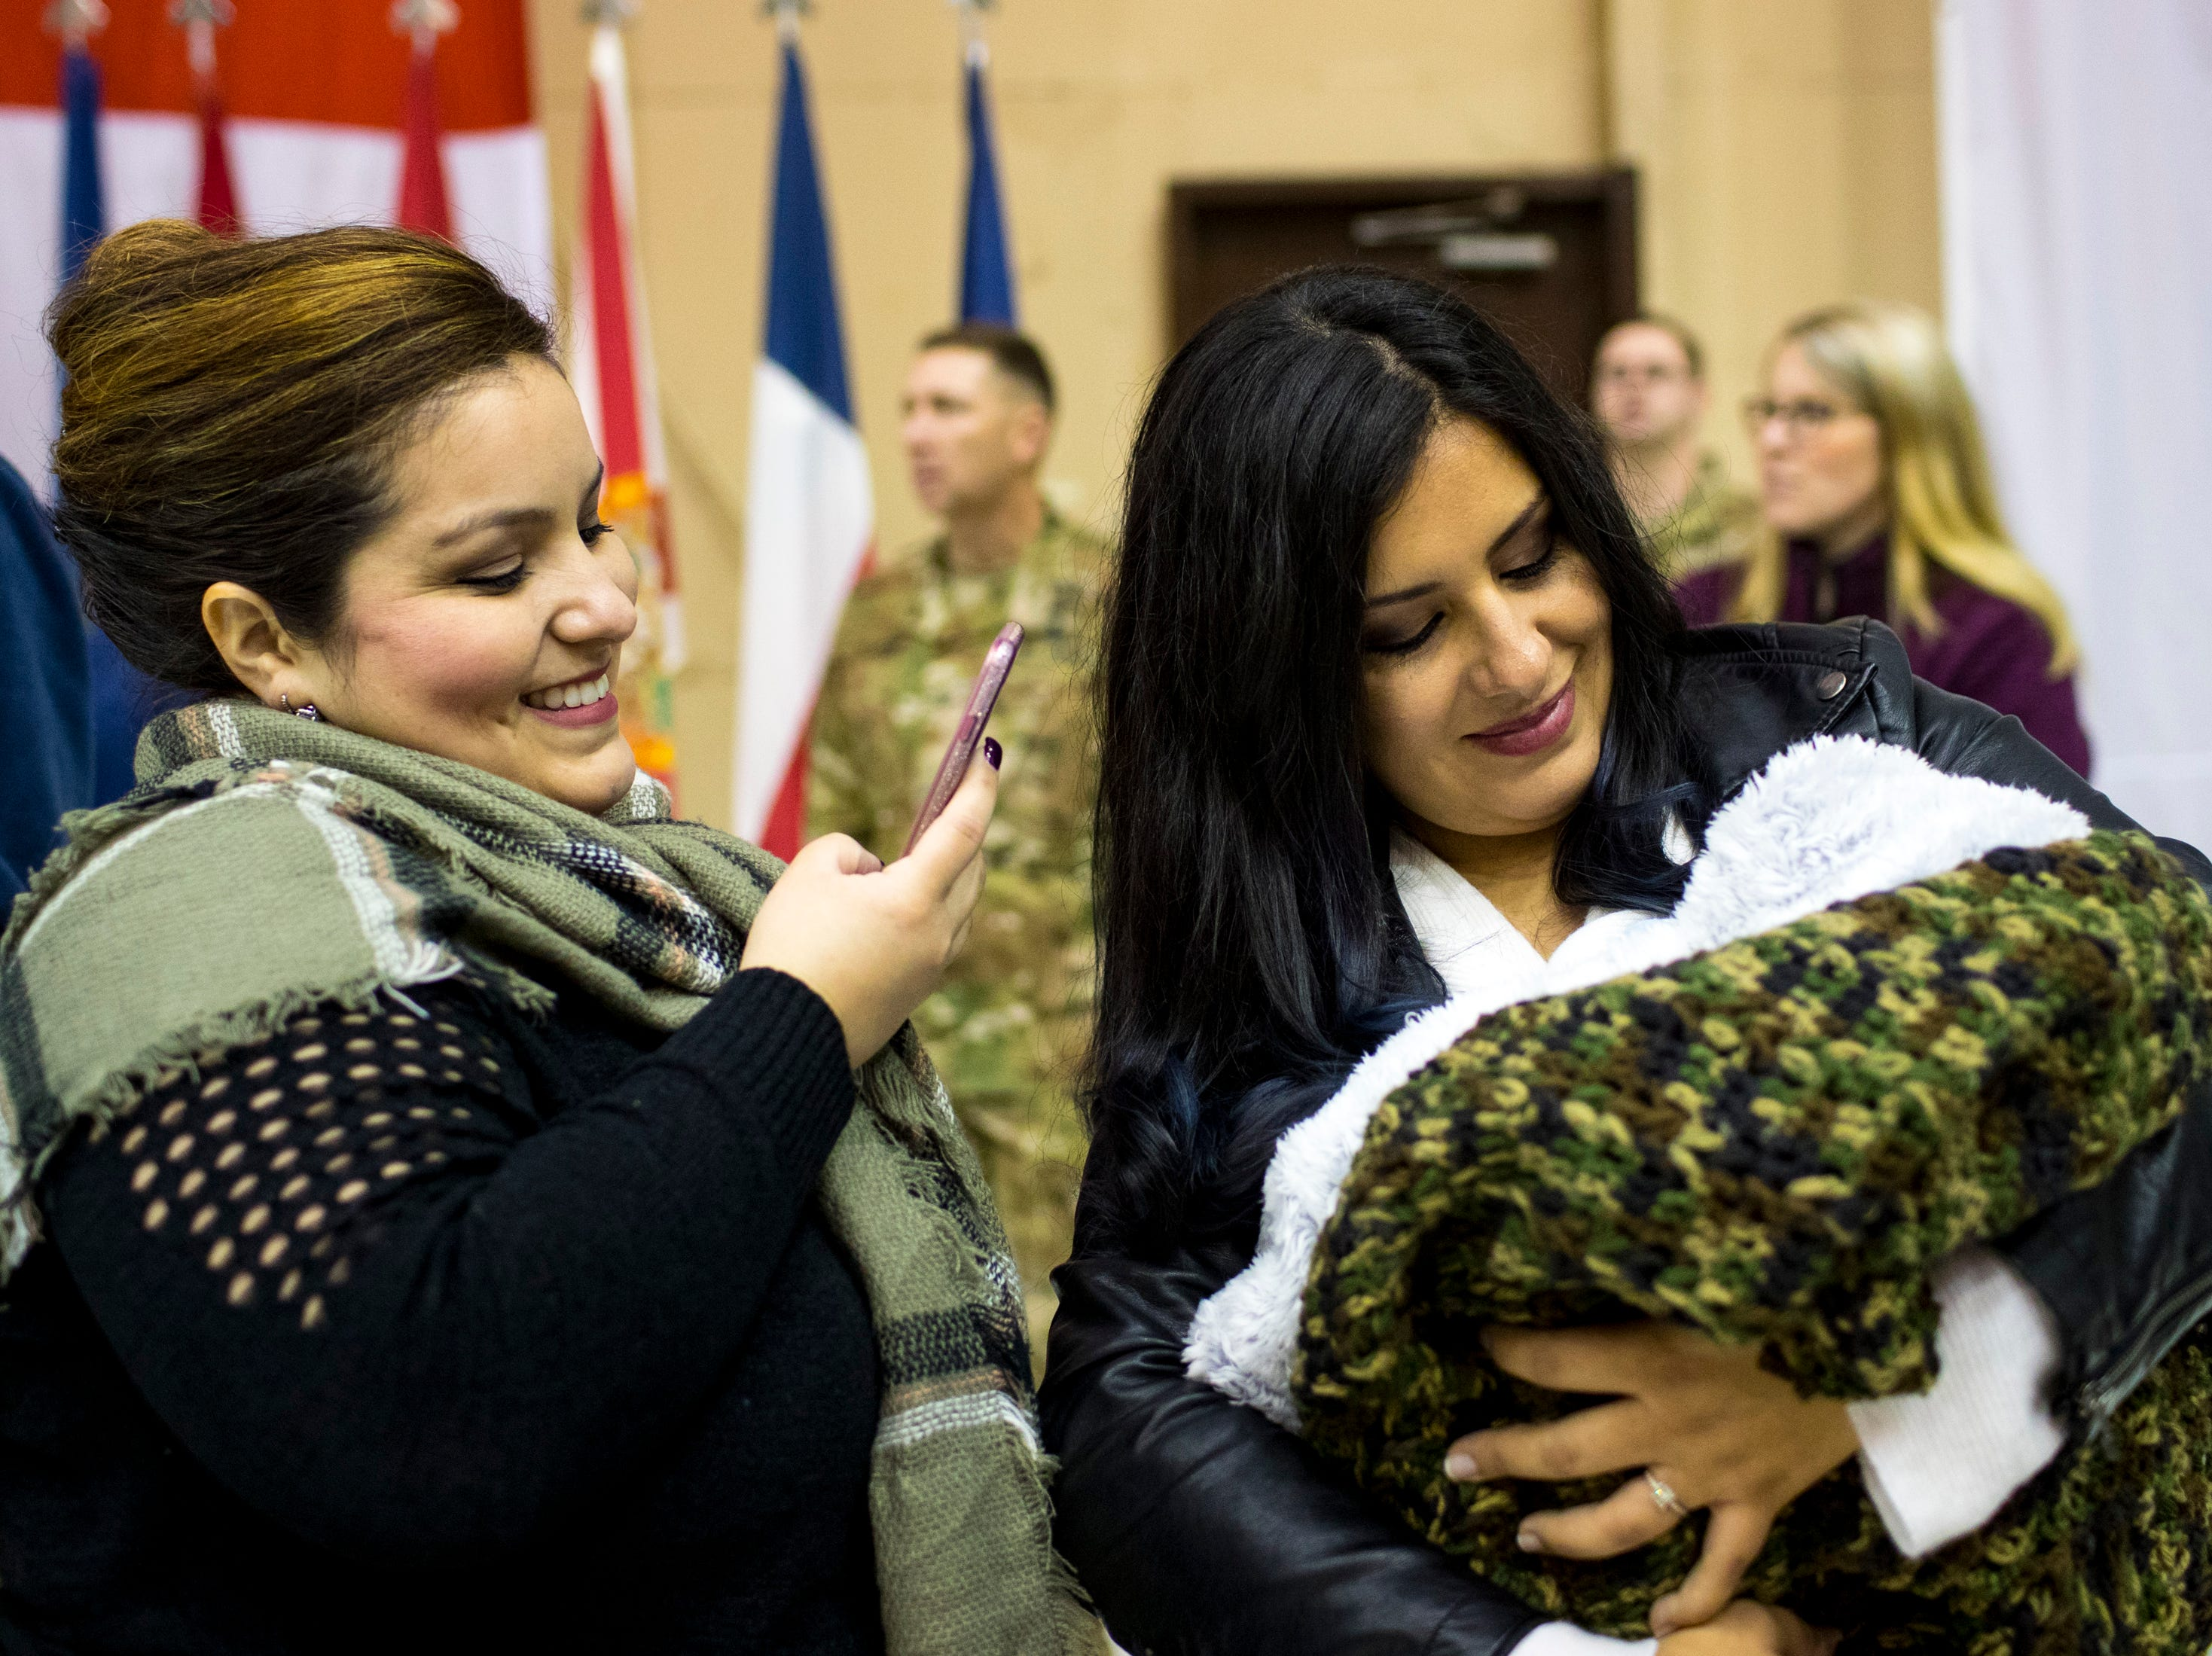 Annabel Rivera records her sister, Elizabeth Peterson, as she prepares to greet her husband, Sgt. Major Kevin Peterson, with their newborn son, Logan Grey Peterson, 1 week, during the welcome home ceremony for the 2nd Battalion, 44th Air Defense Artillery Regiment and 101st Airborne Division at Fort Campbell in the early hours of Monday, Nov. 19, 2018. The soldiers were returning from a 9-month deployment in Afghanistan.